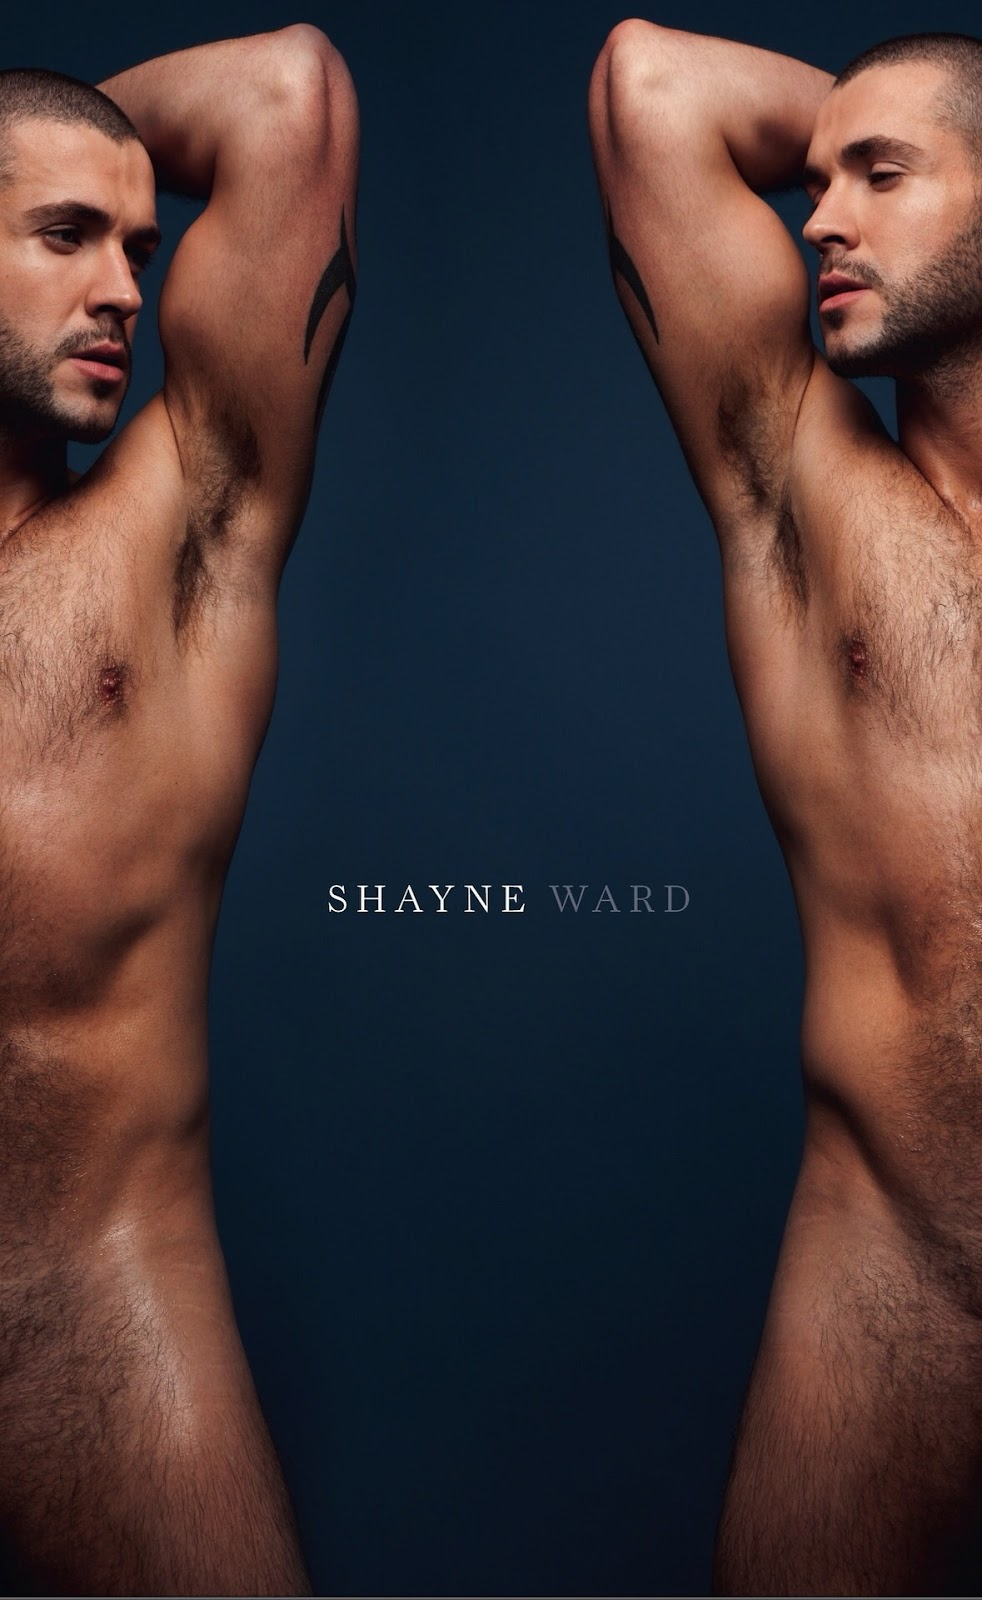 Shayne-Thomas-Ward-born-October-is-an-English-pop-singer-who-rose-to-fame-as-the-winner-o-wallpaper-wp44011257